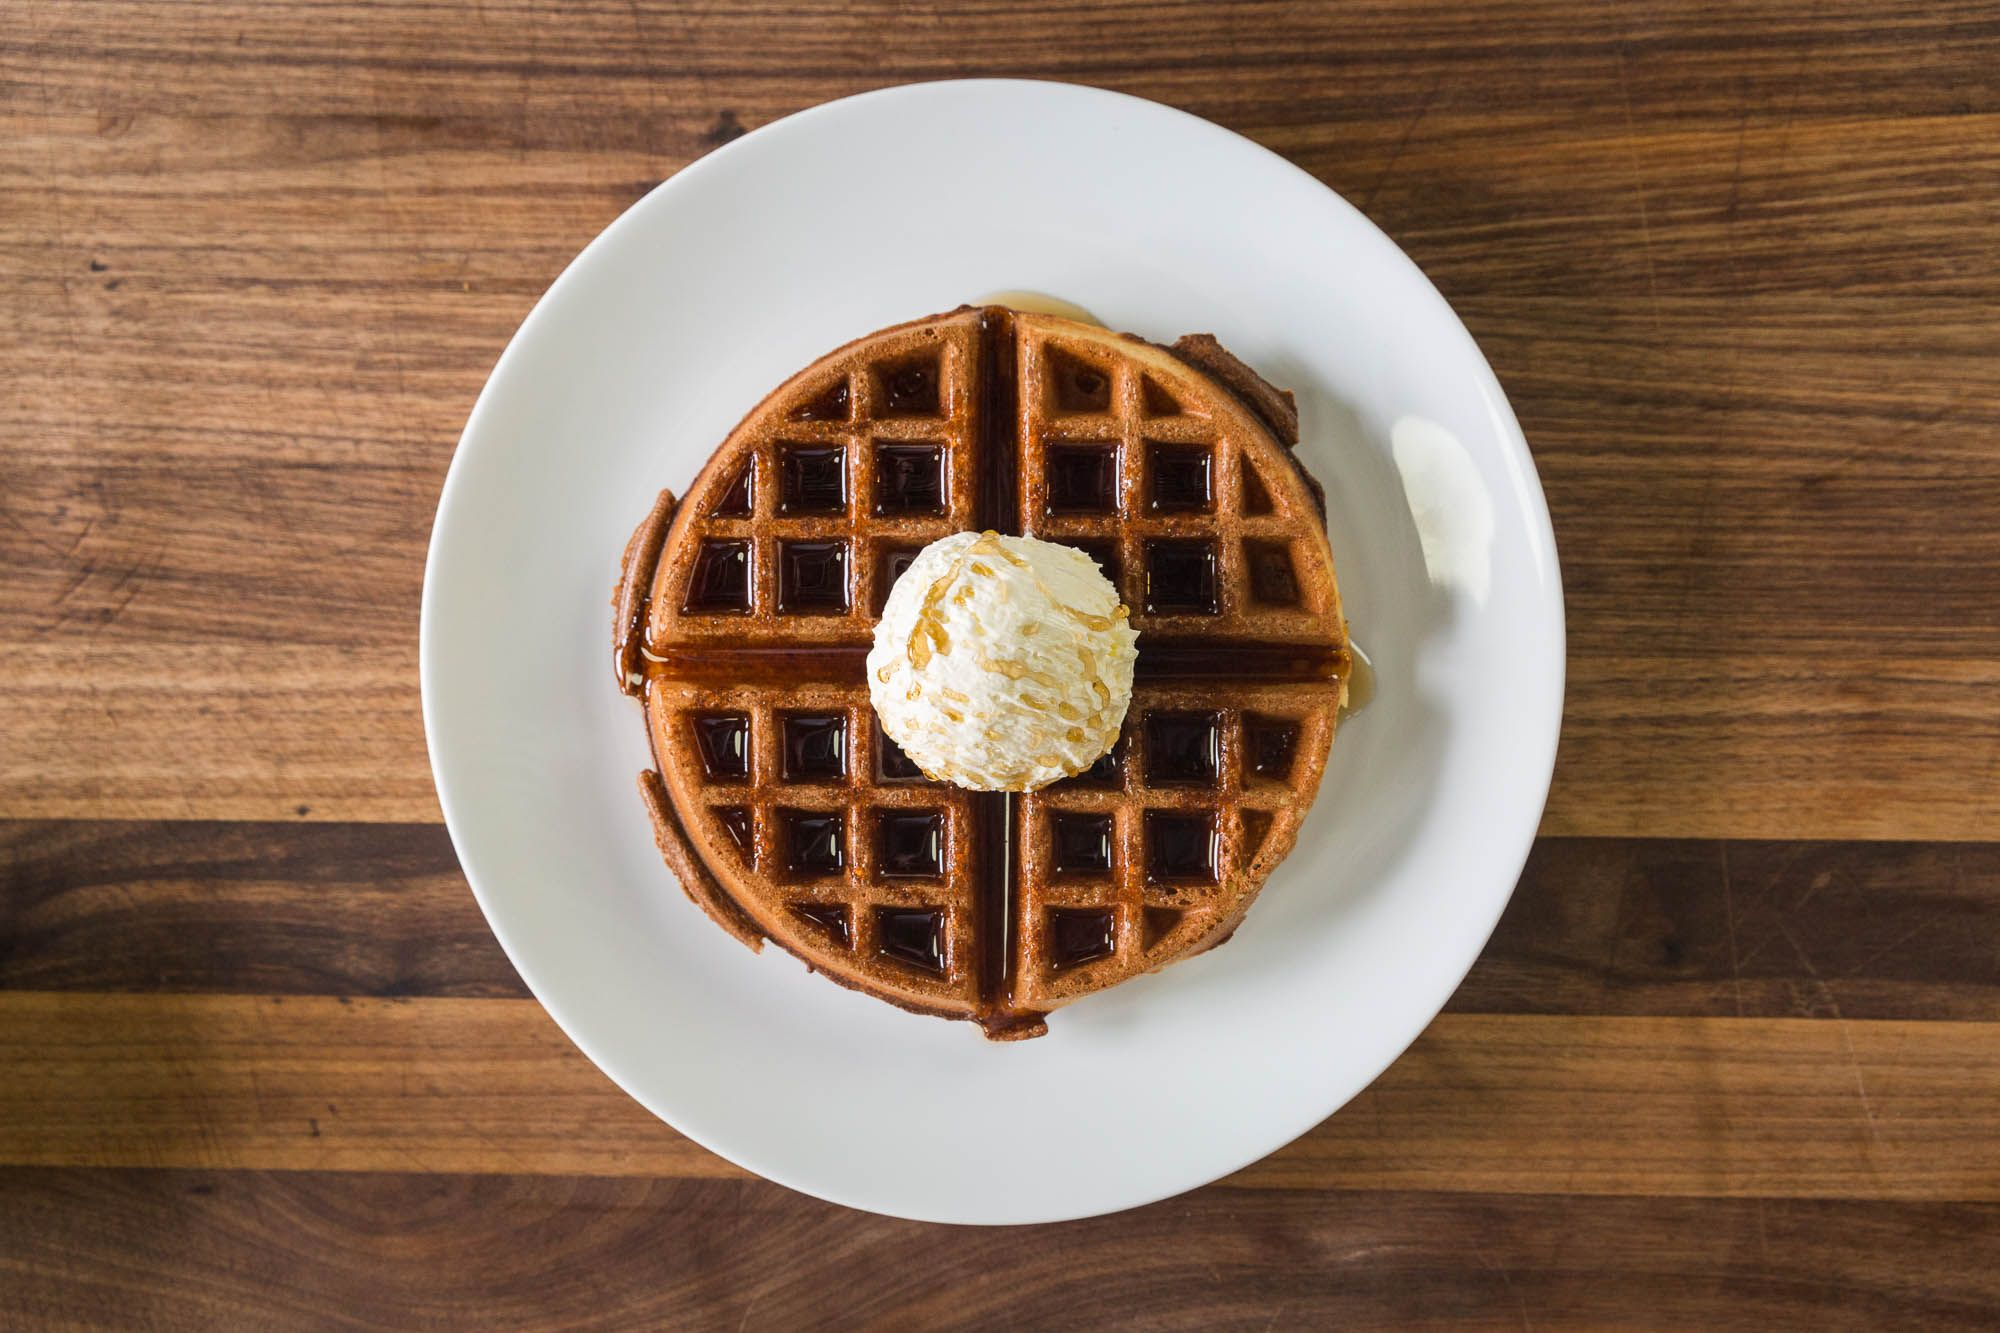 A hot, homemade waffle with butter and maple syrup. Pancakes vs. Waffles—which one is your favorite? Get the recipes: http://chfstps.co/1EmbAWw